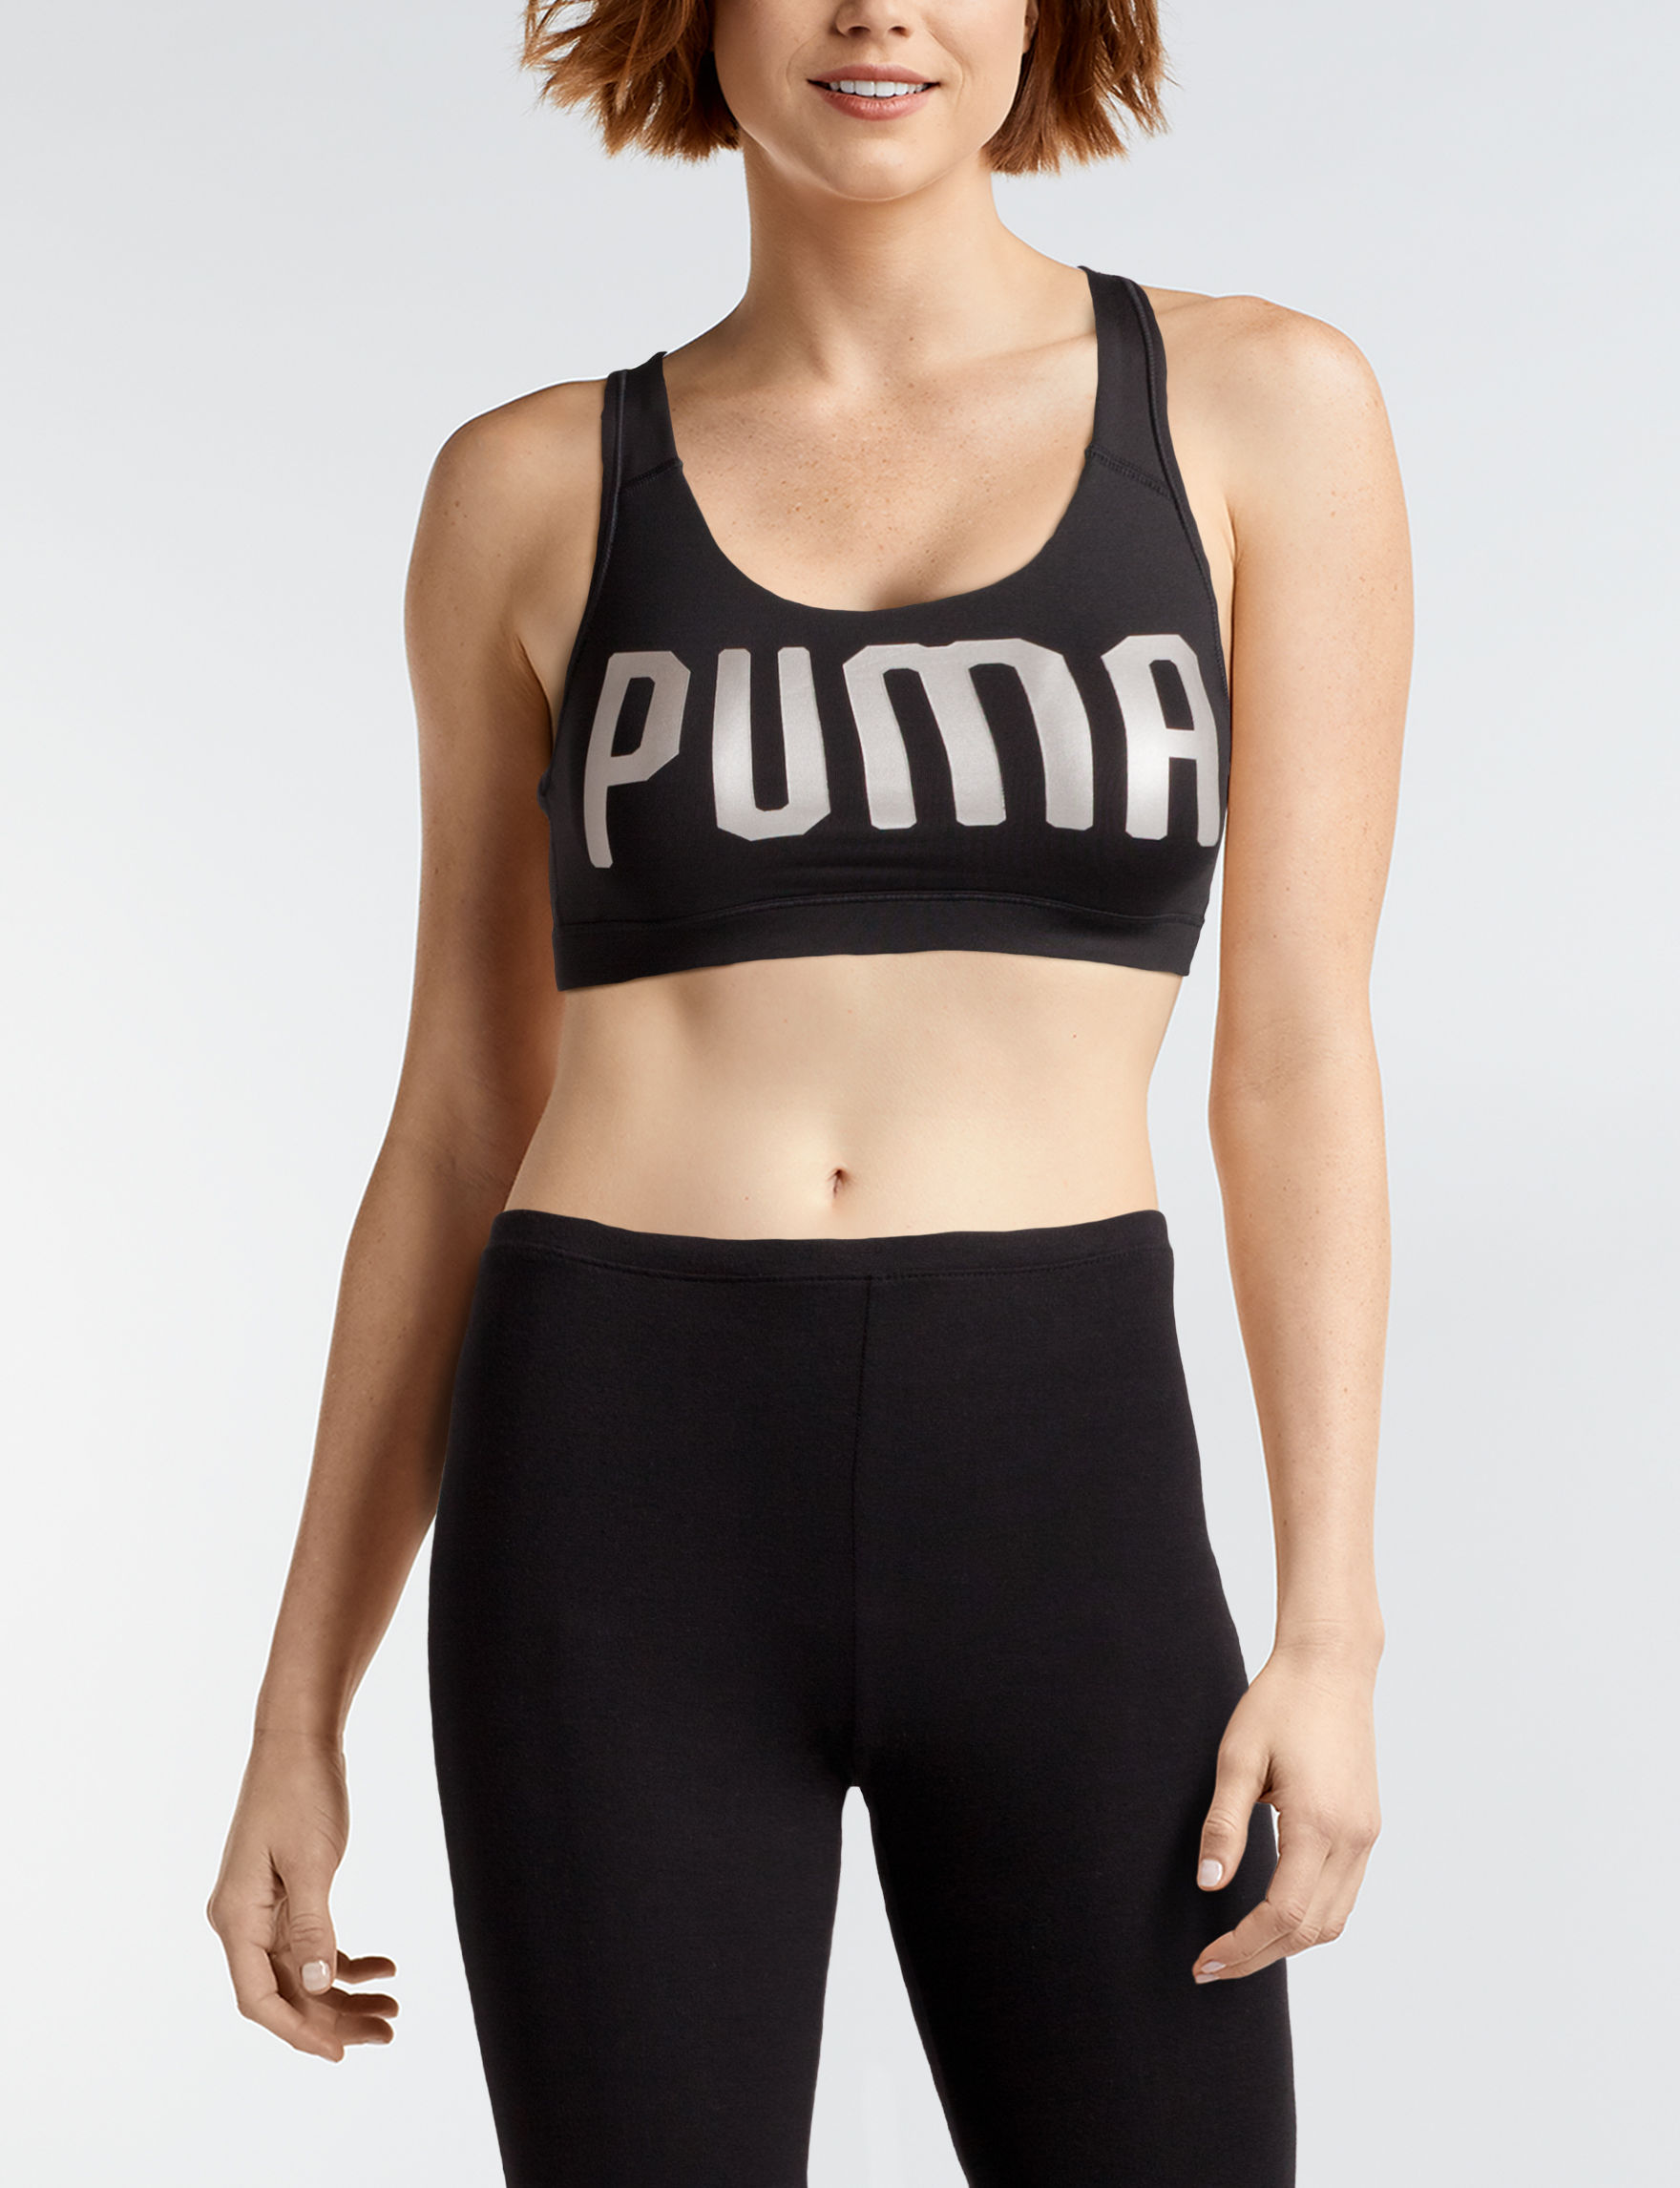 Puma Black Bras Sports Bra